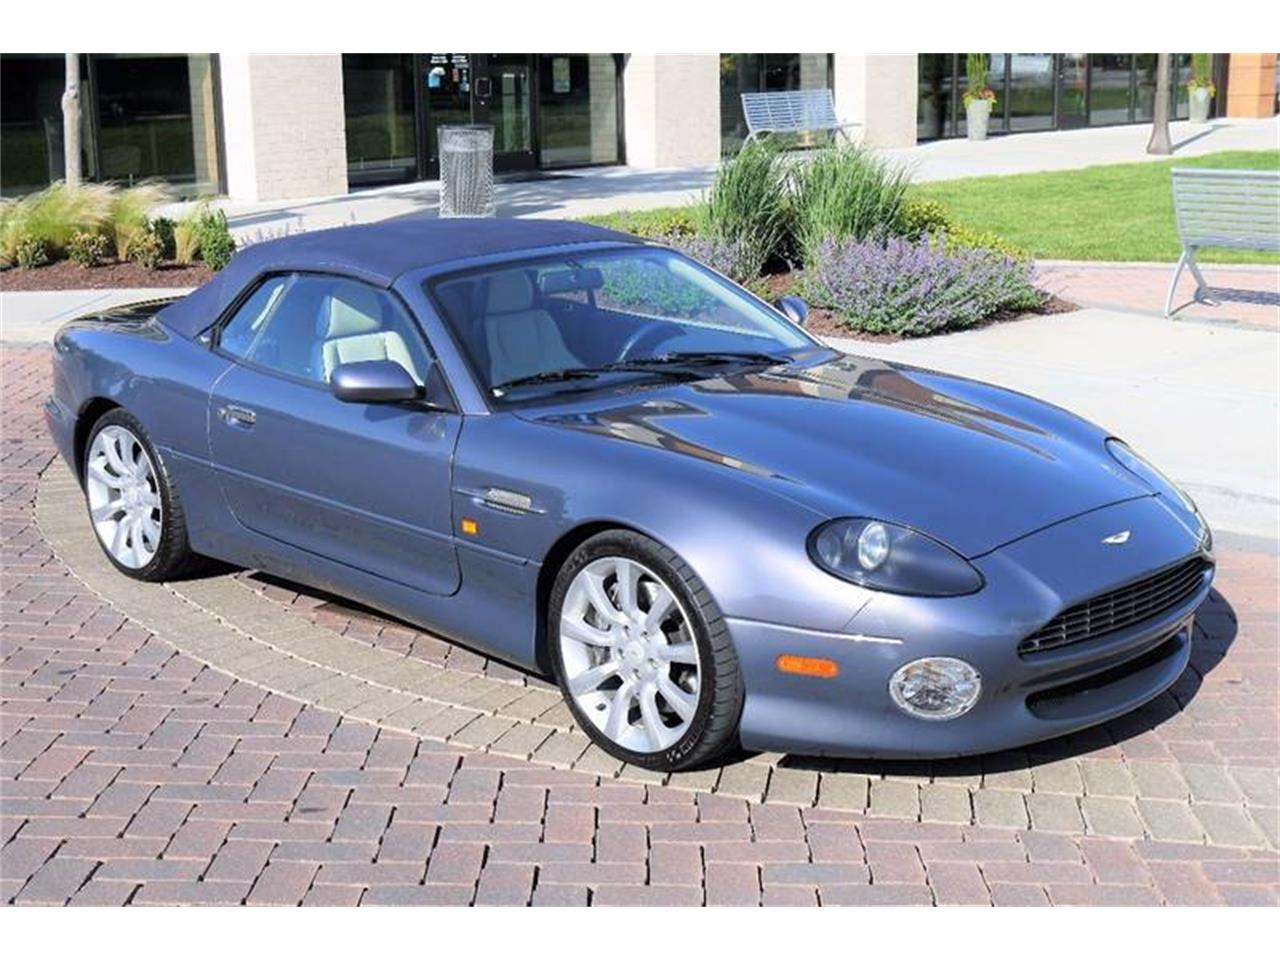 Large Picture of 2003 Aston Martin DB7 located in Brentwood Tennessee Auction Vehicle Offered by Arde Motorcars - L79D